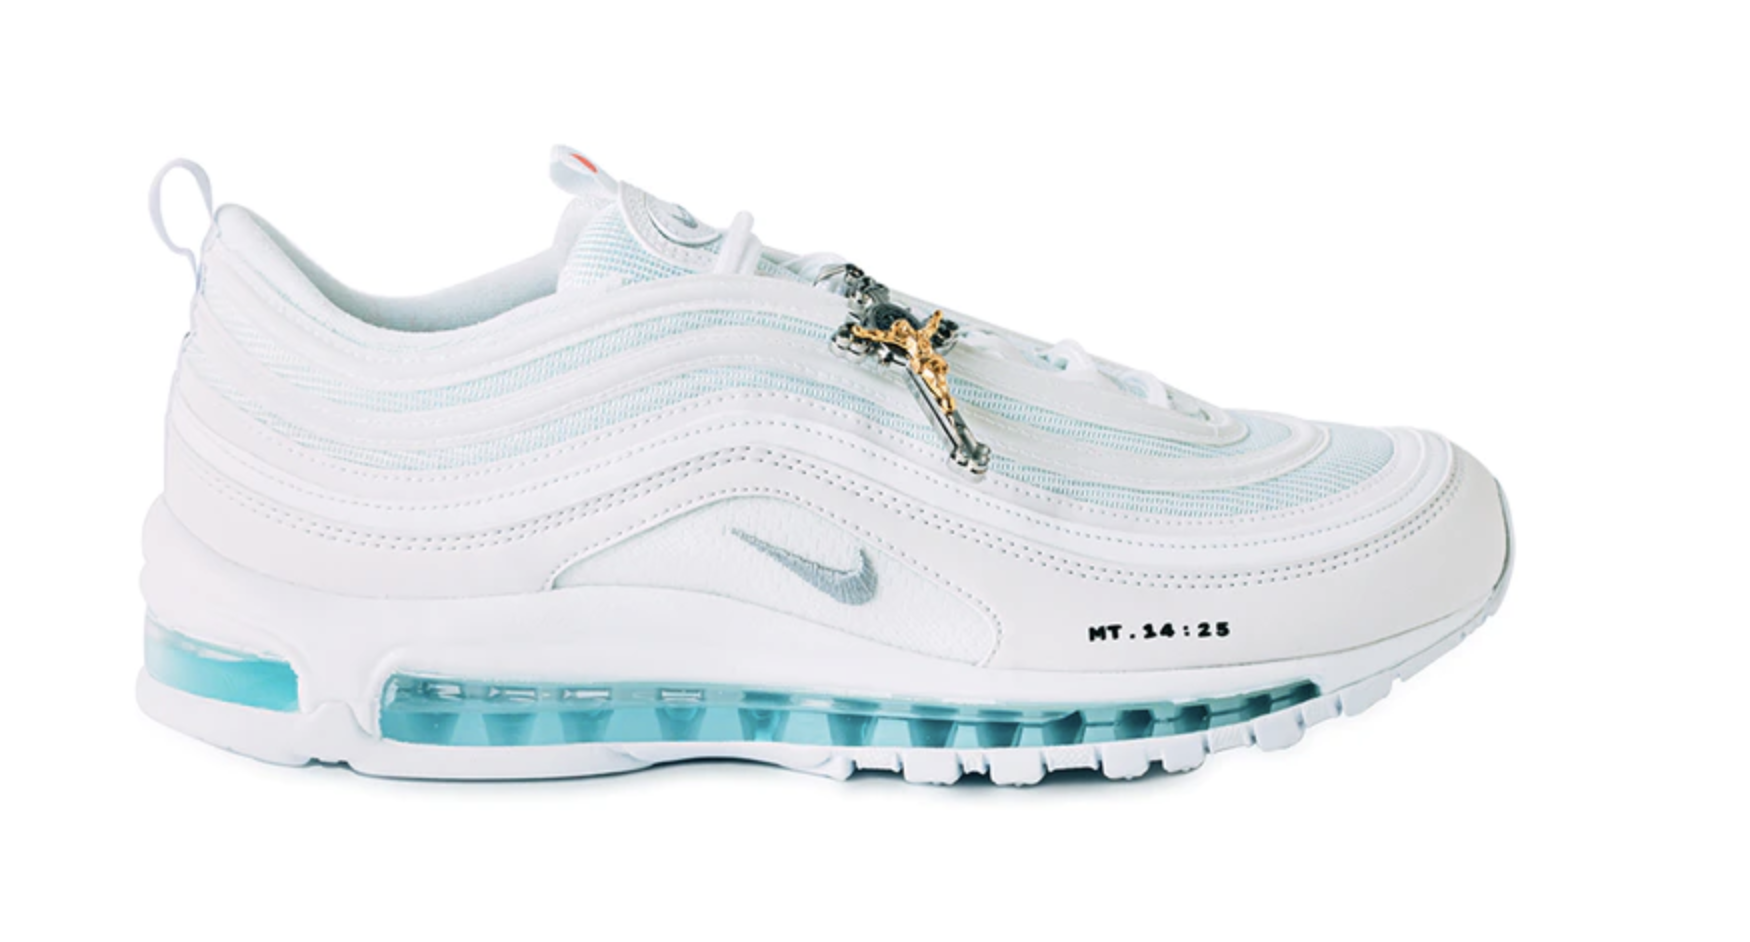 Holy Water-Filled Nike Air Max 97 Shoes